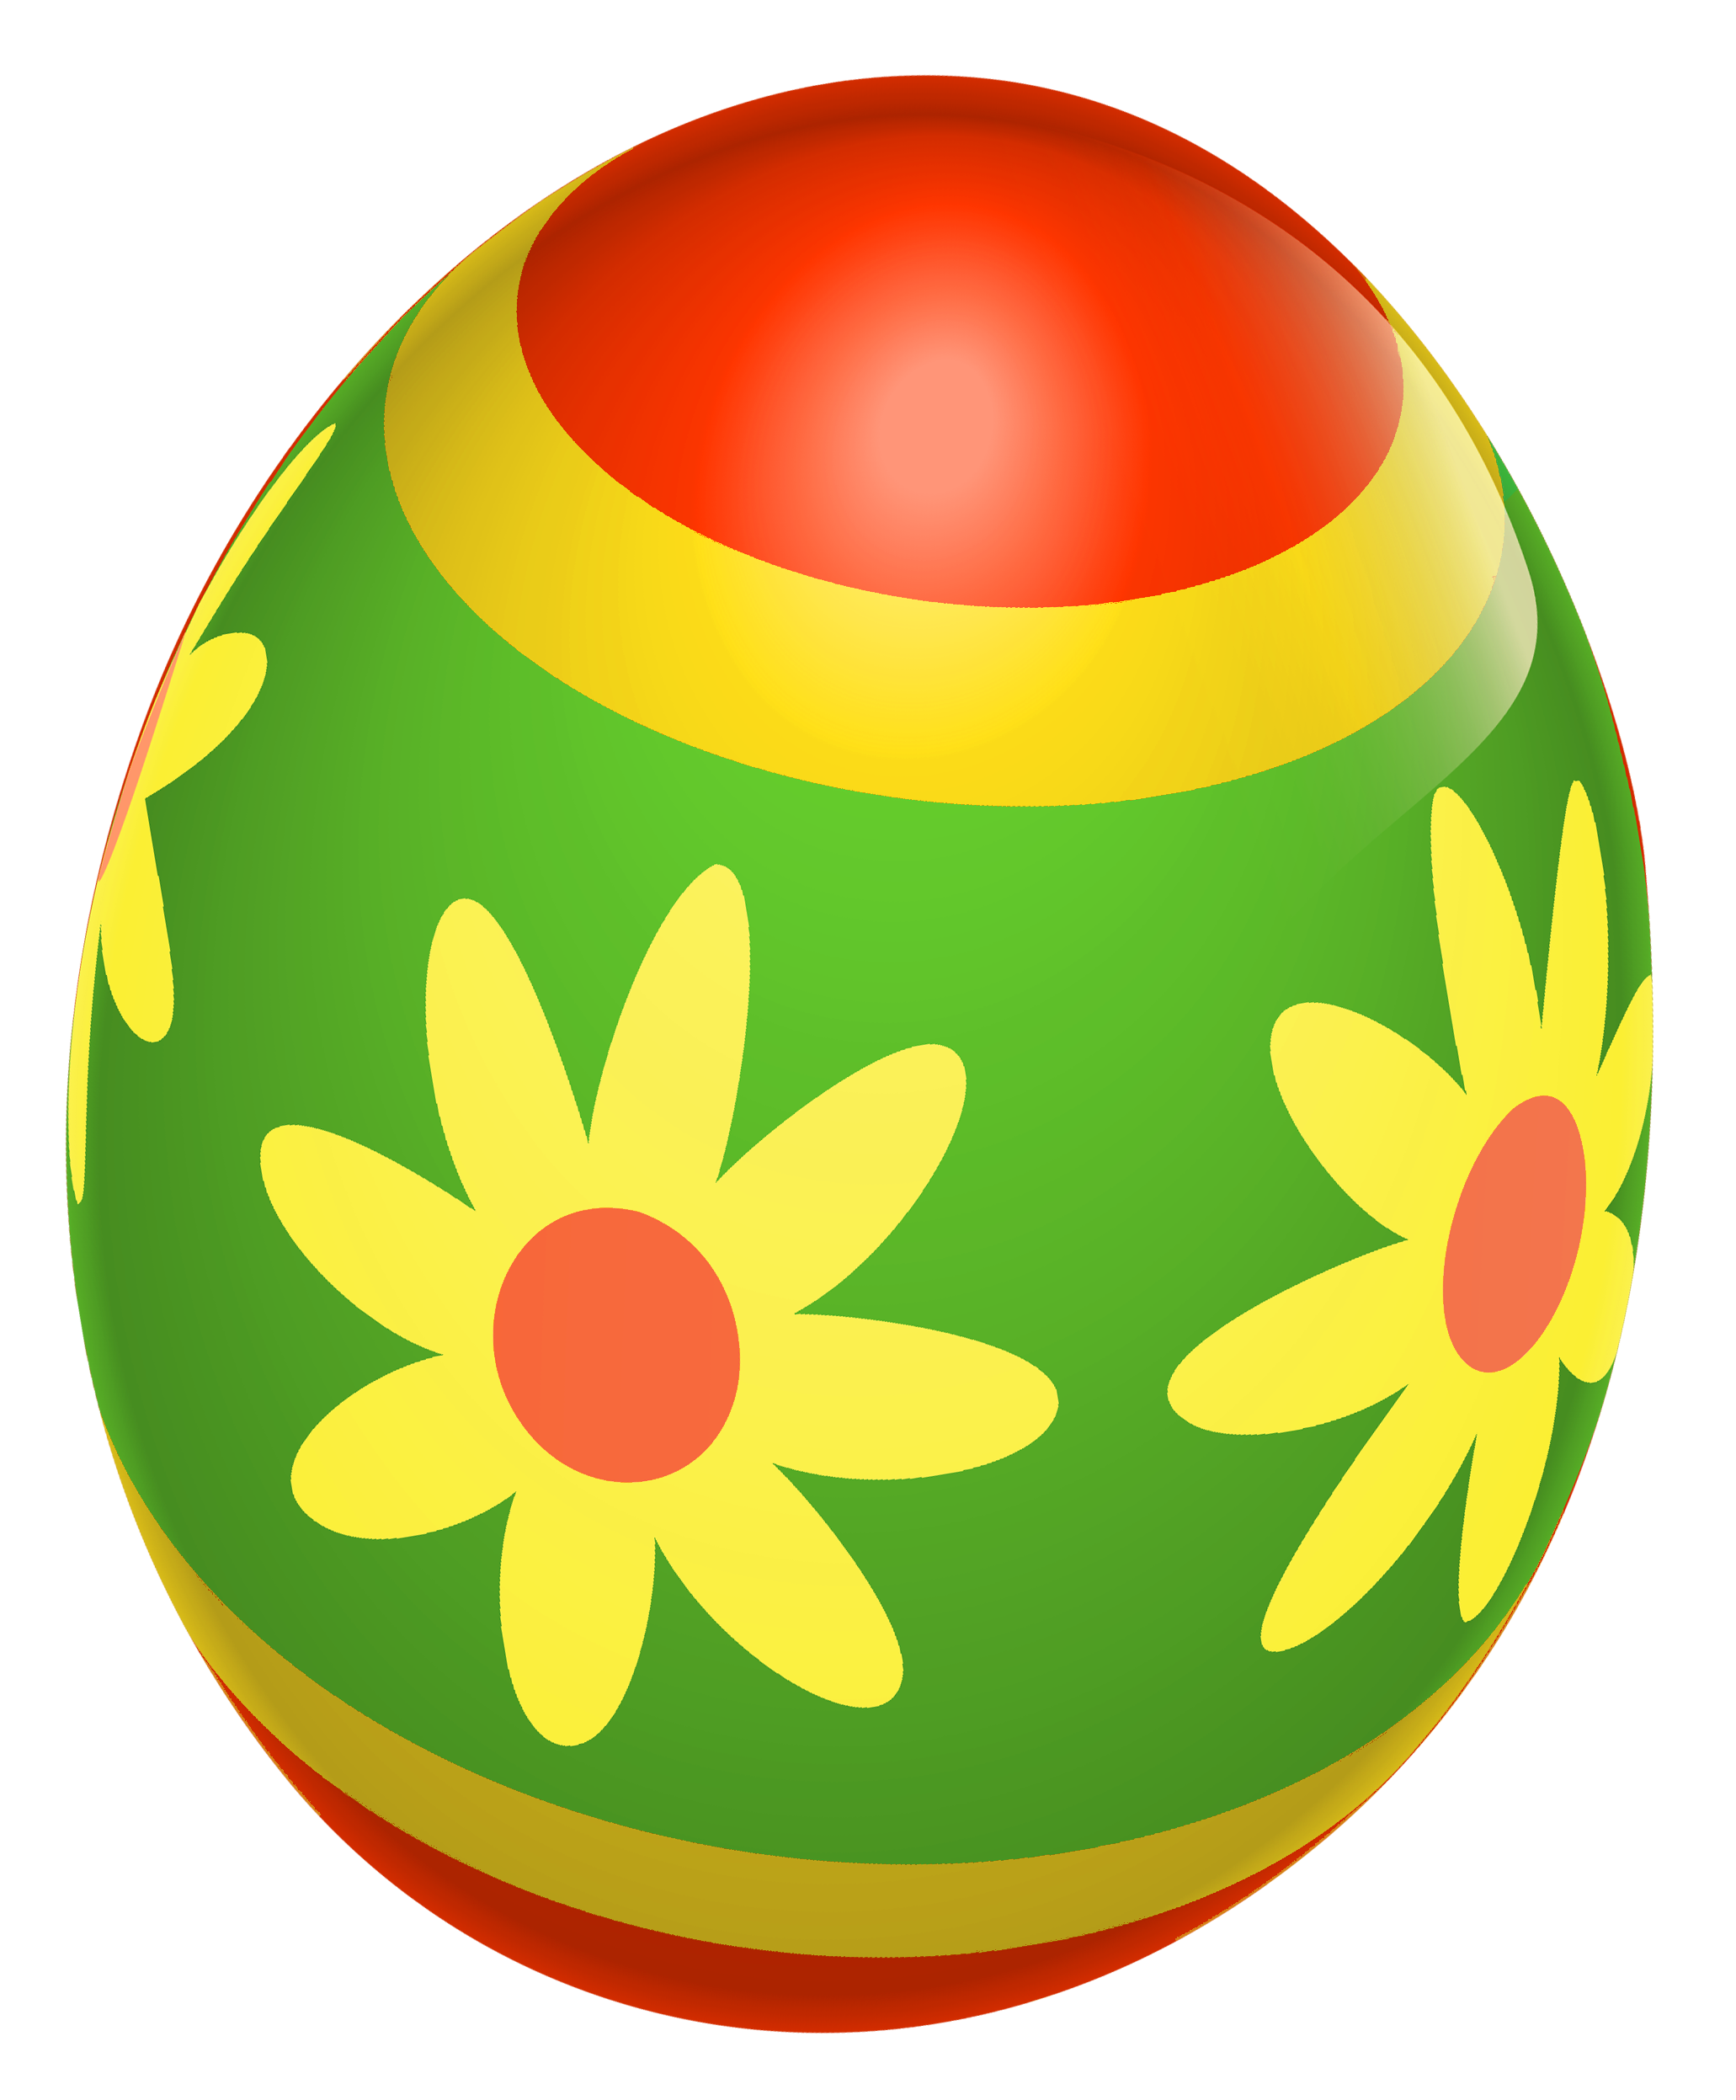 Green egg png. Easter red and with